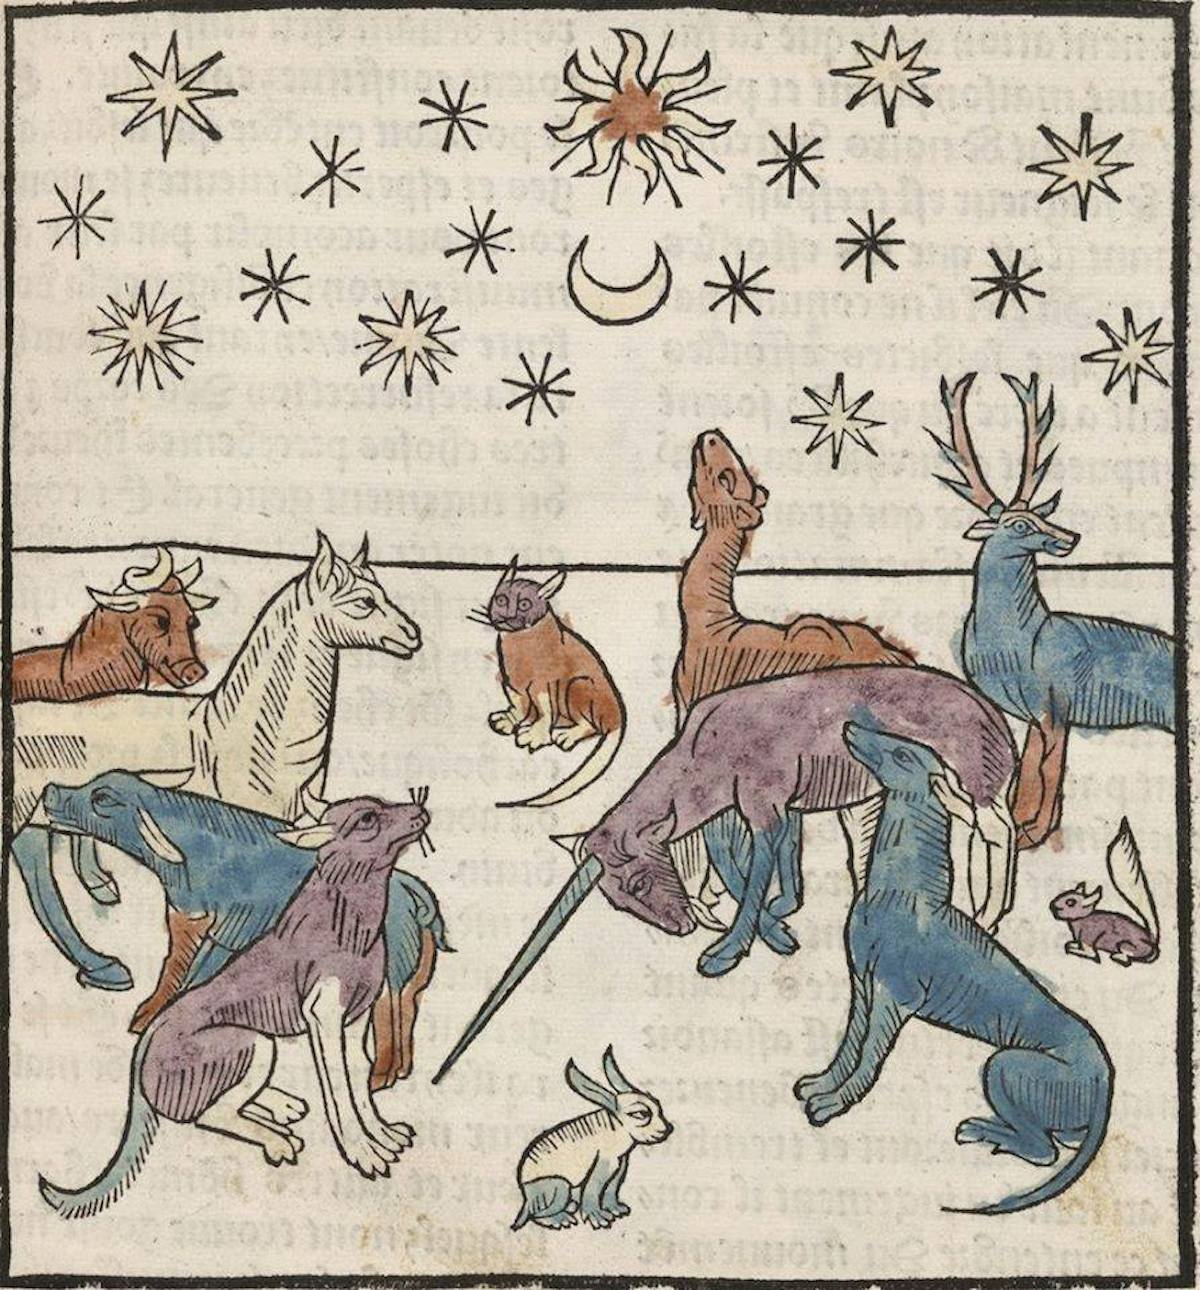 advent 9 Animals under a night sky from Antoine Vérard's 'L'Art de bien vivre et de bien mourir' (The Art of Living Well and of Dying Well) , 1494